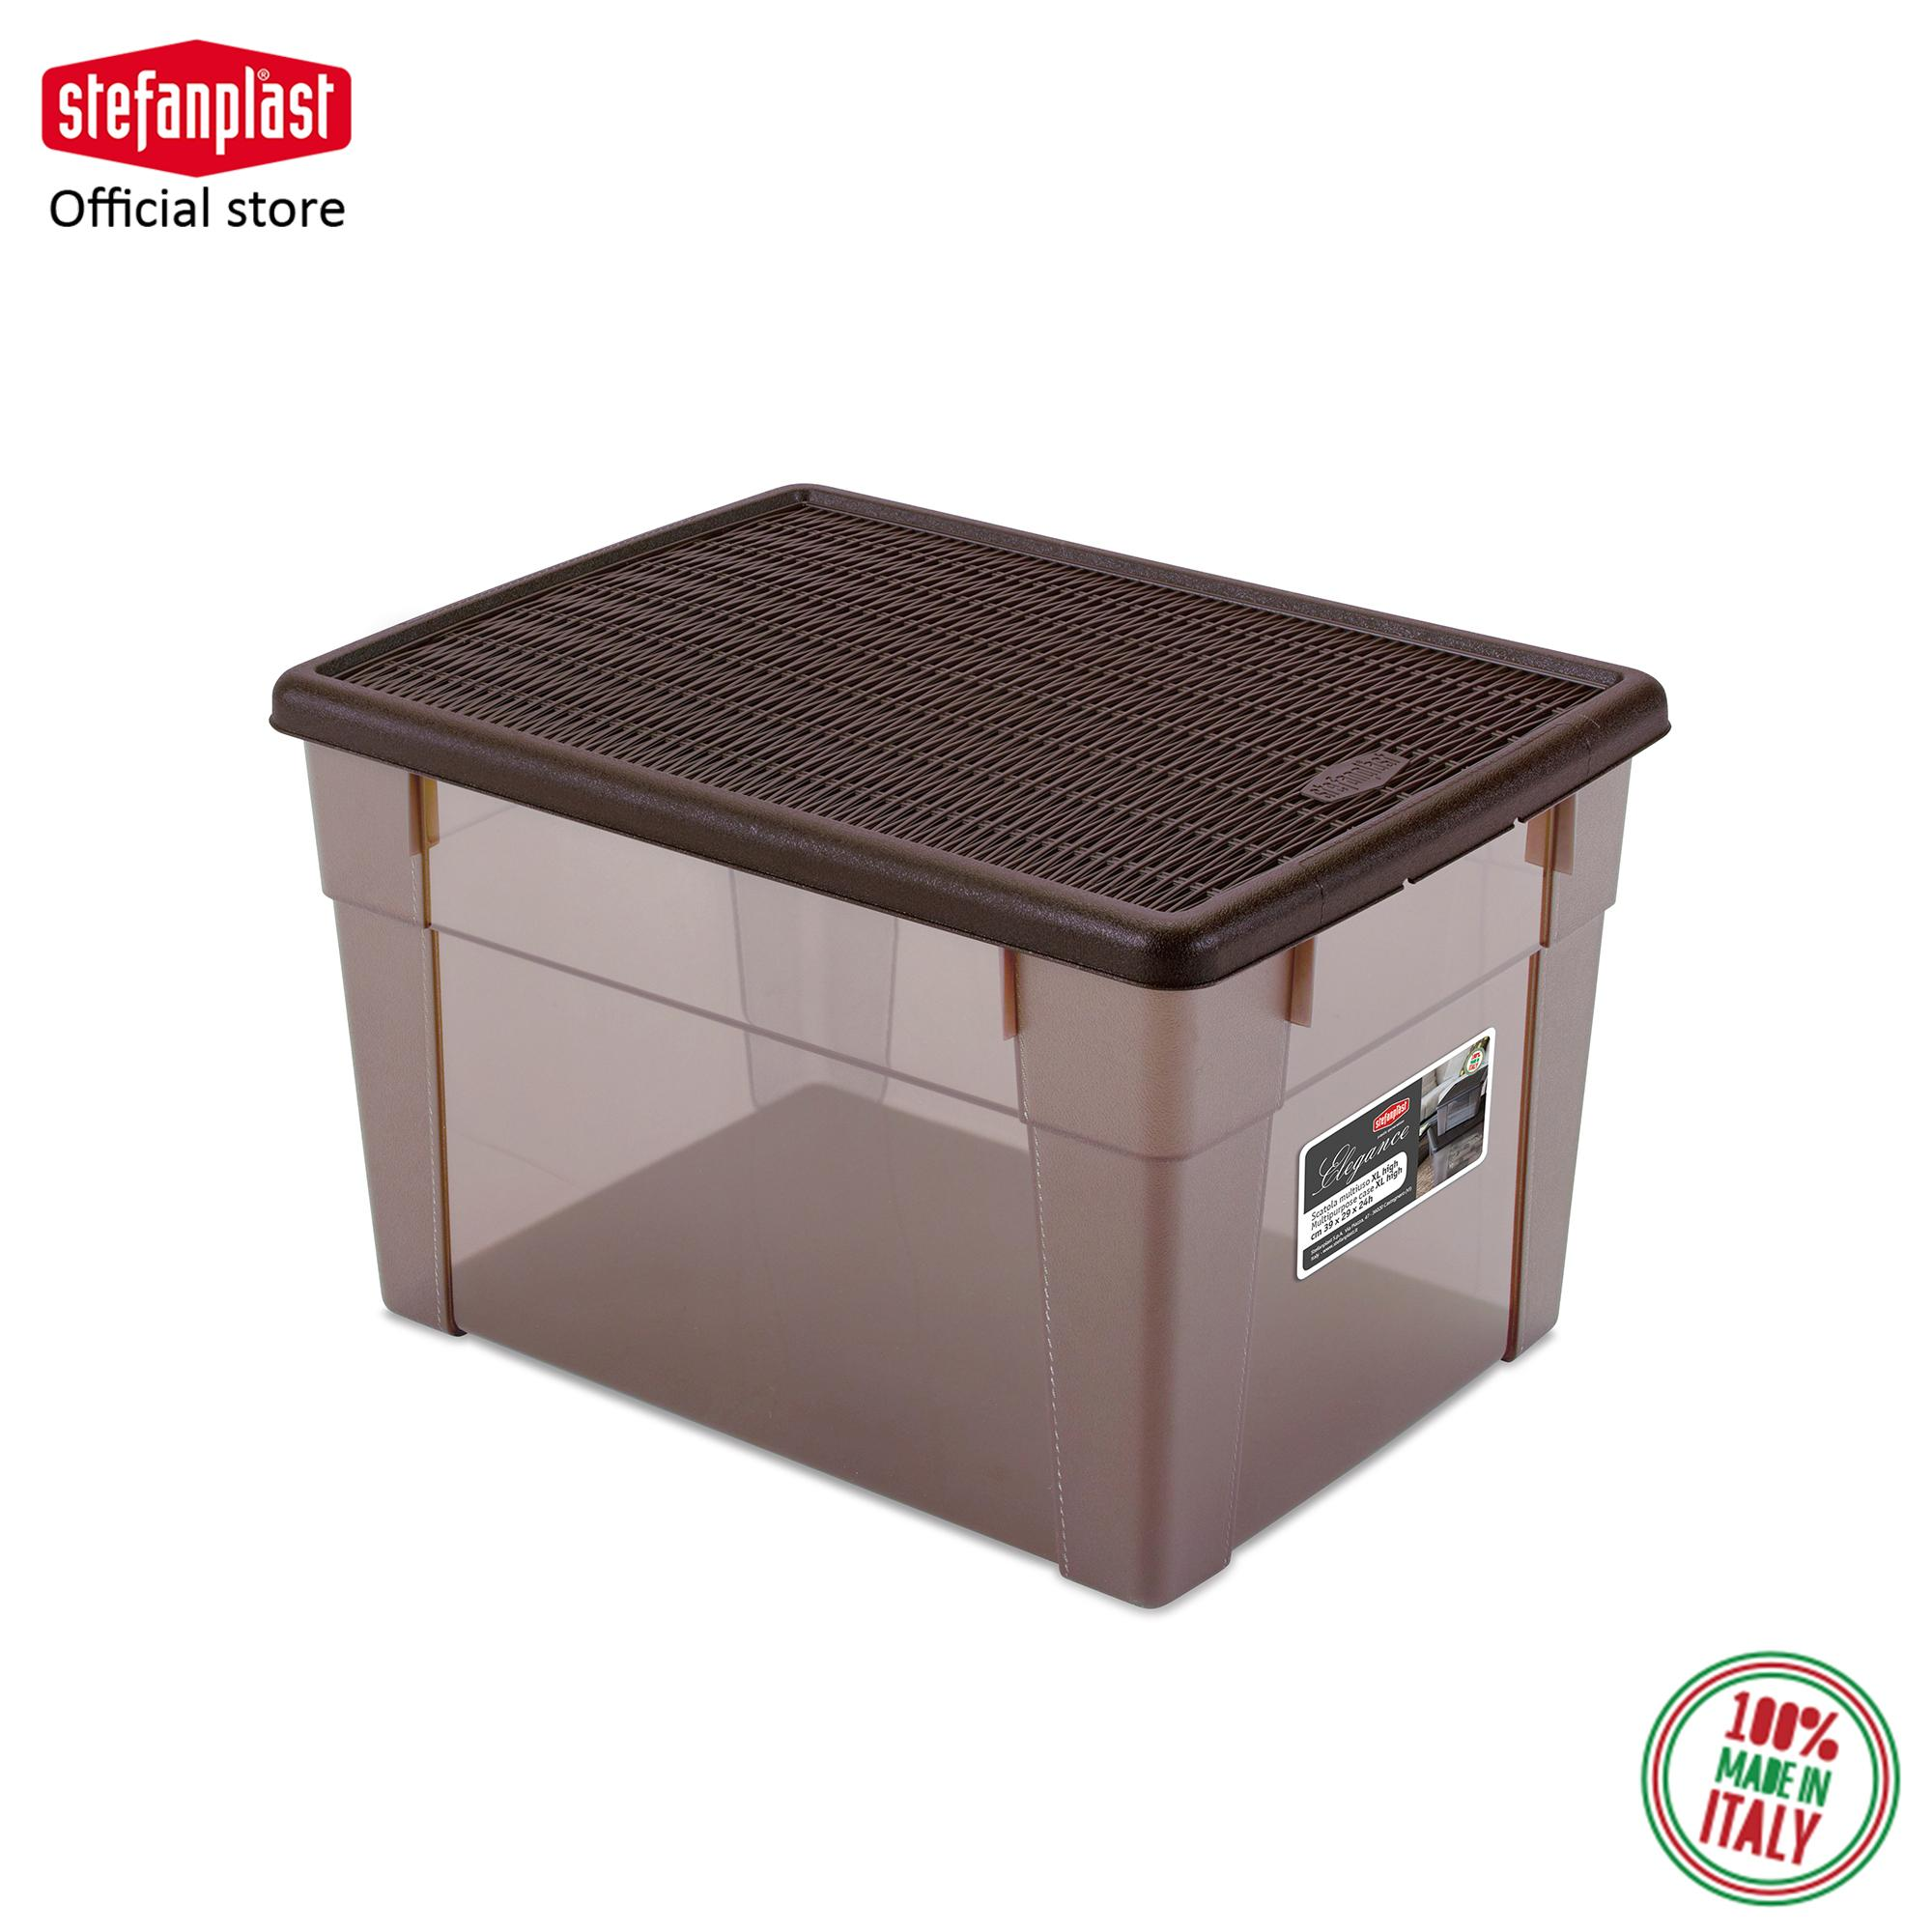 20L Elegance Multipurpose Box HIGH (Size XL) See-Through Stackable Storage Box High Quality Sturdy 100% Made in Italy